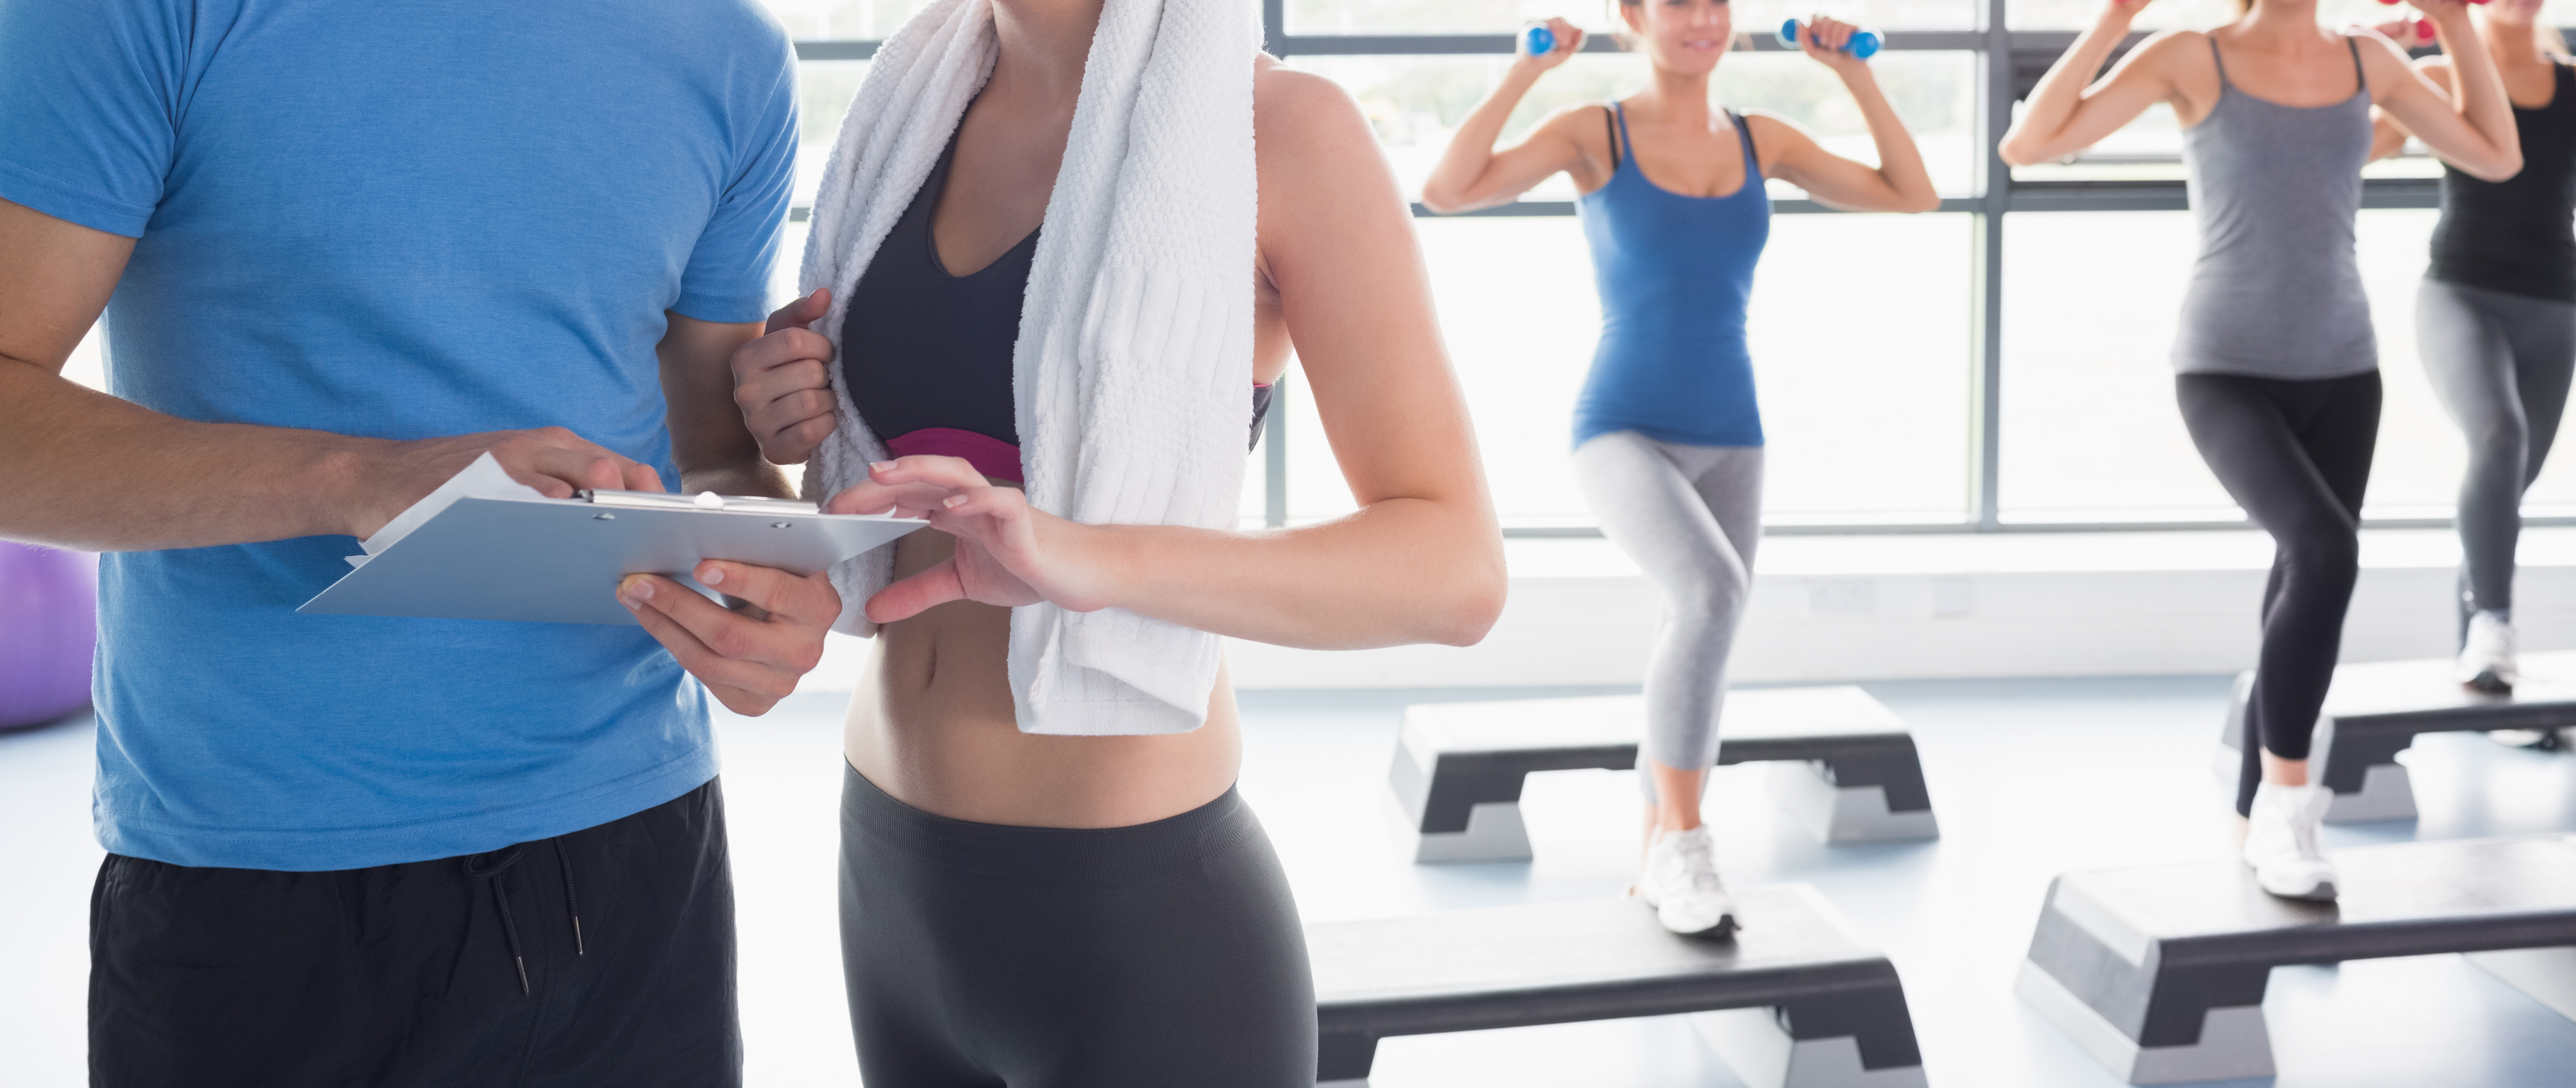 Why Tracking Changes in Body Composition Leads To Results